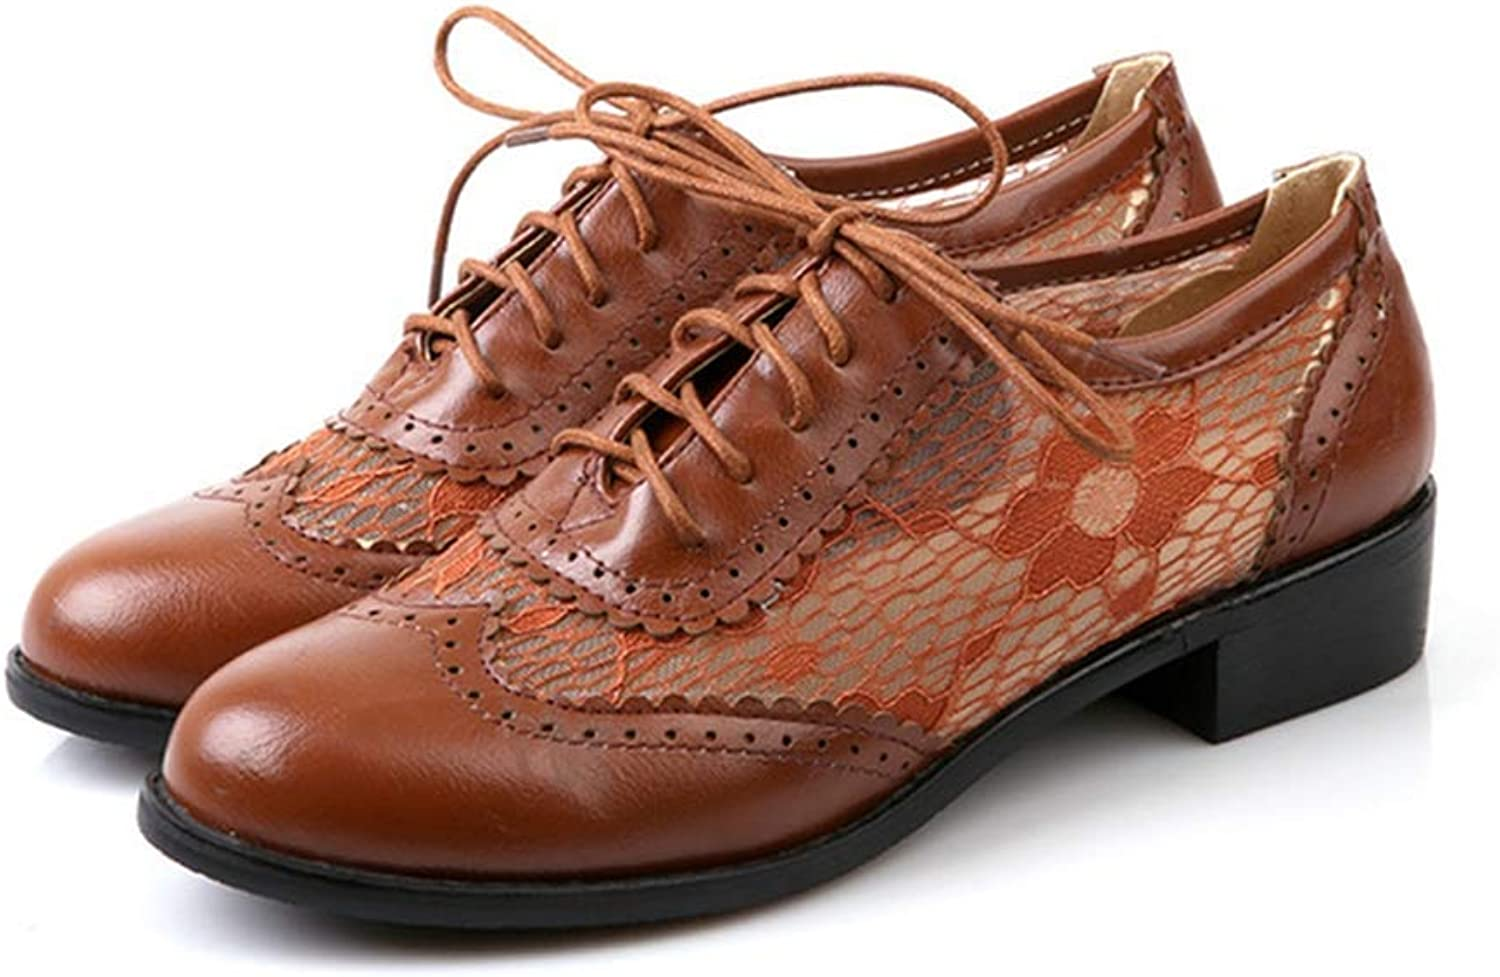 Women's Lace Wingtip Oxfords shoes Vintage Brogues Lace-up Flat Low Heel Classic Dress Oxford Brown